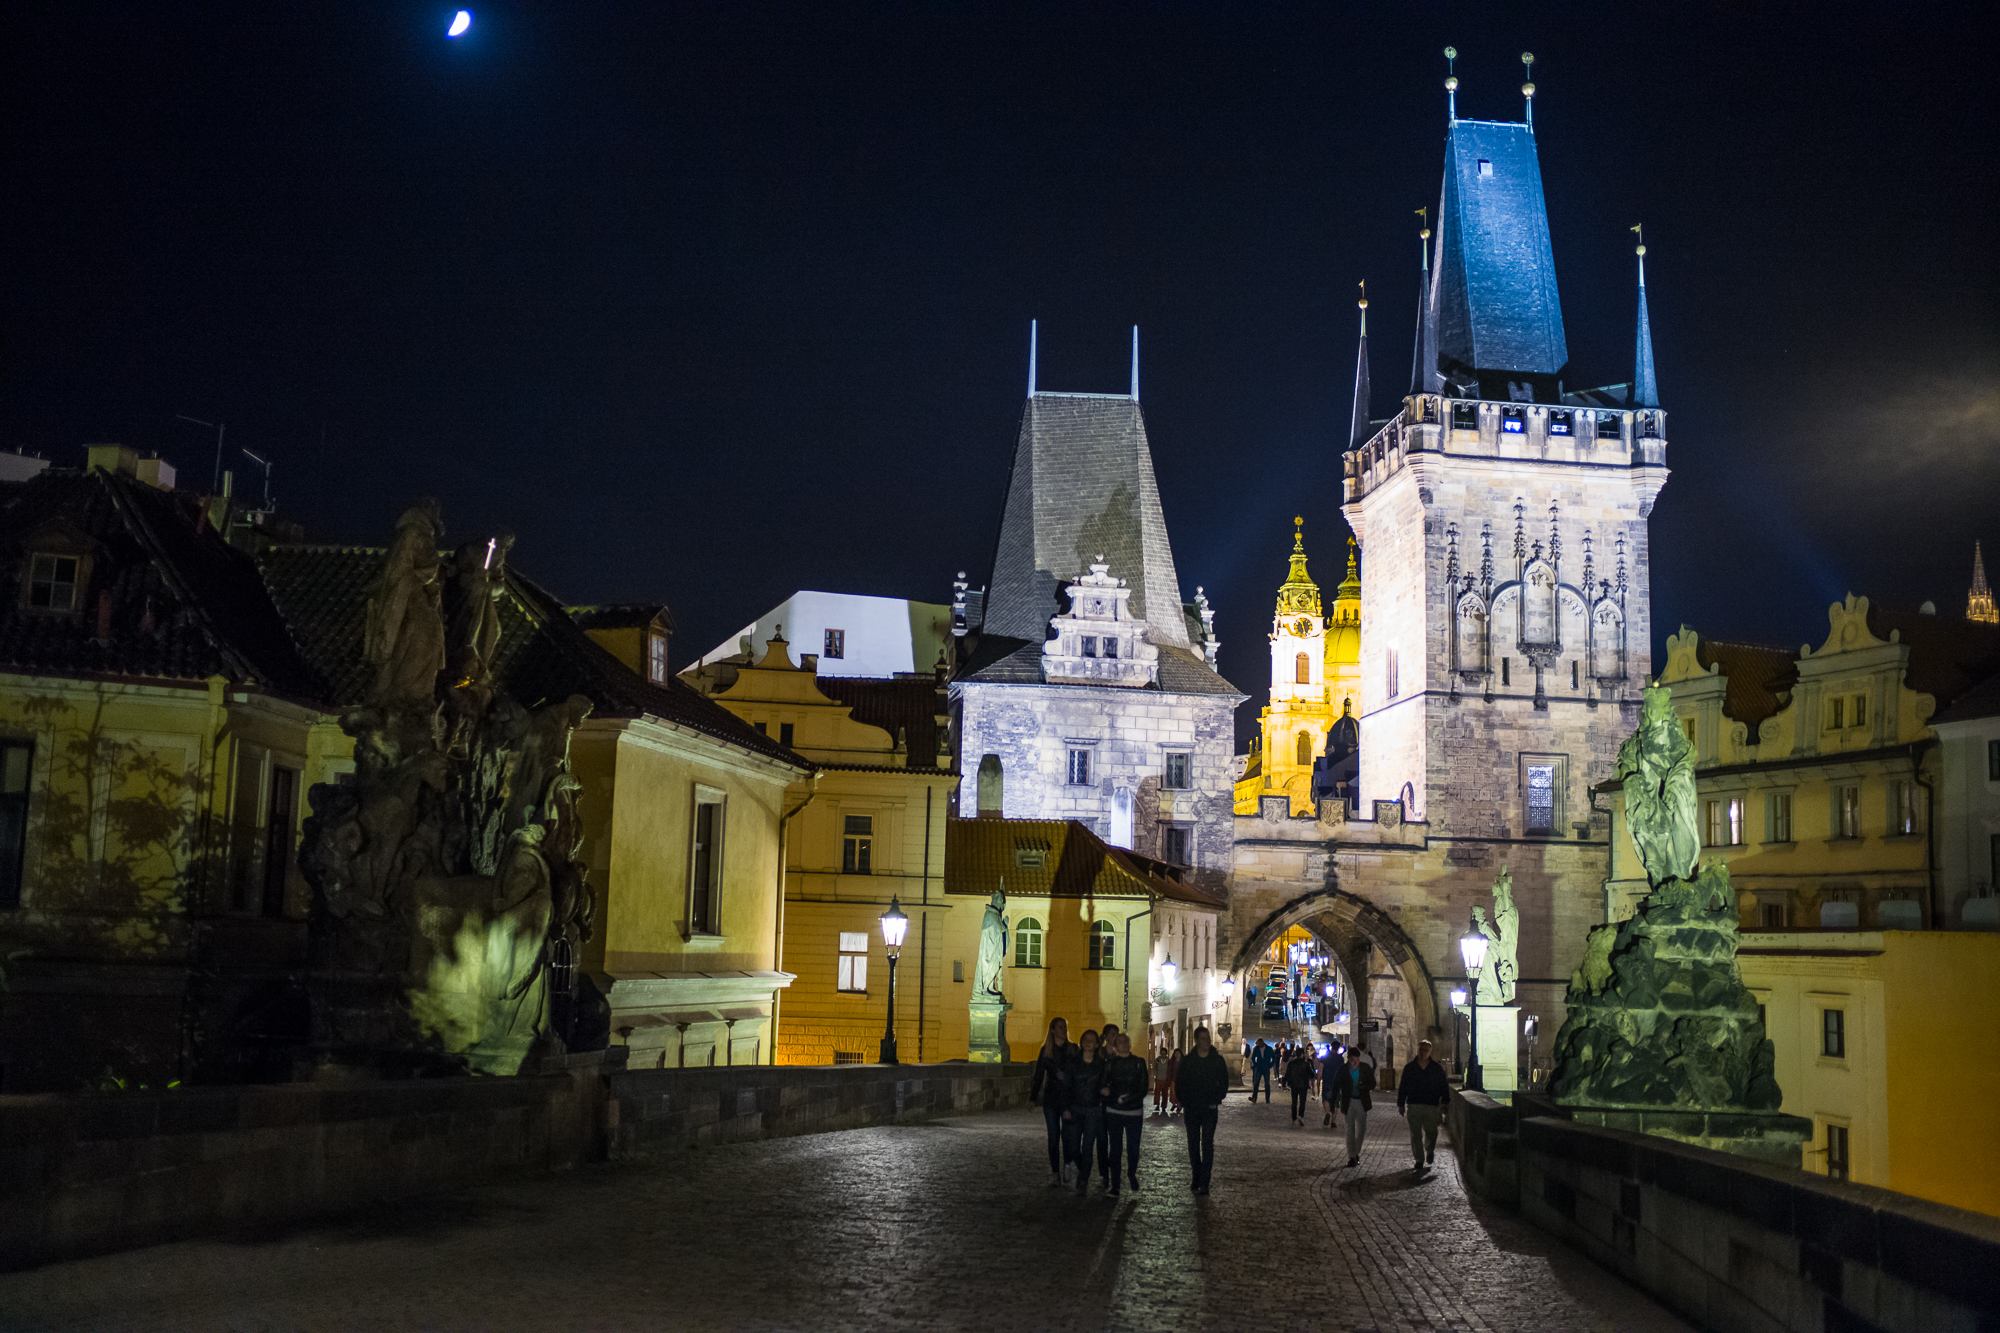 Walking the Charles Bridge at night